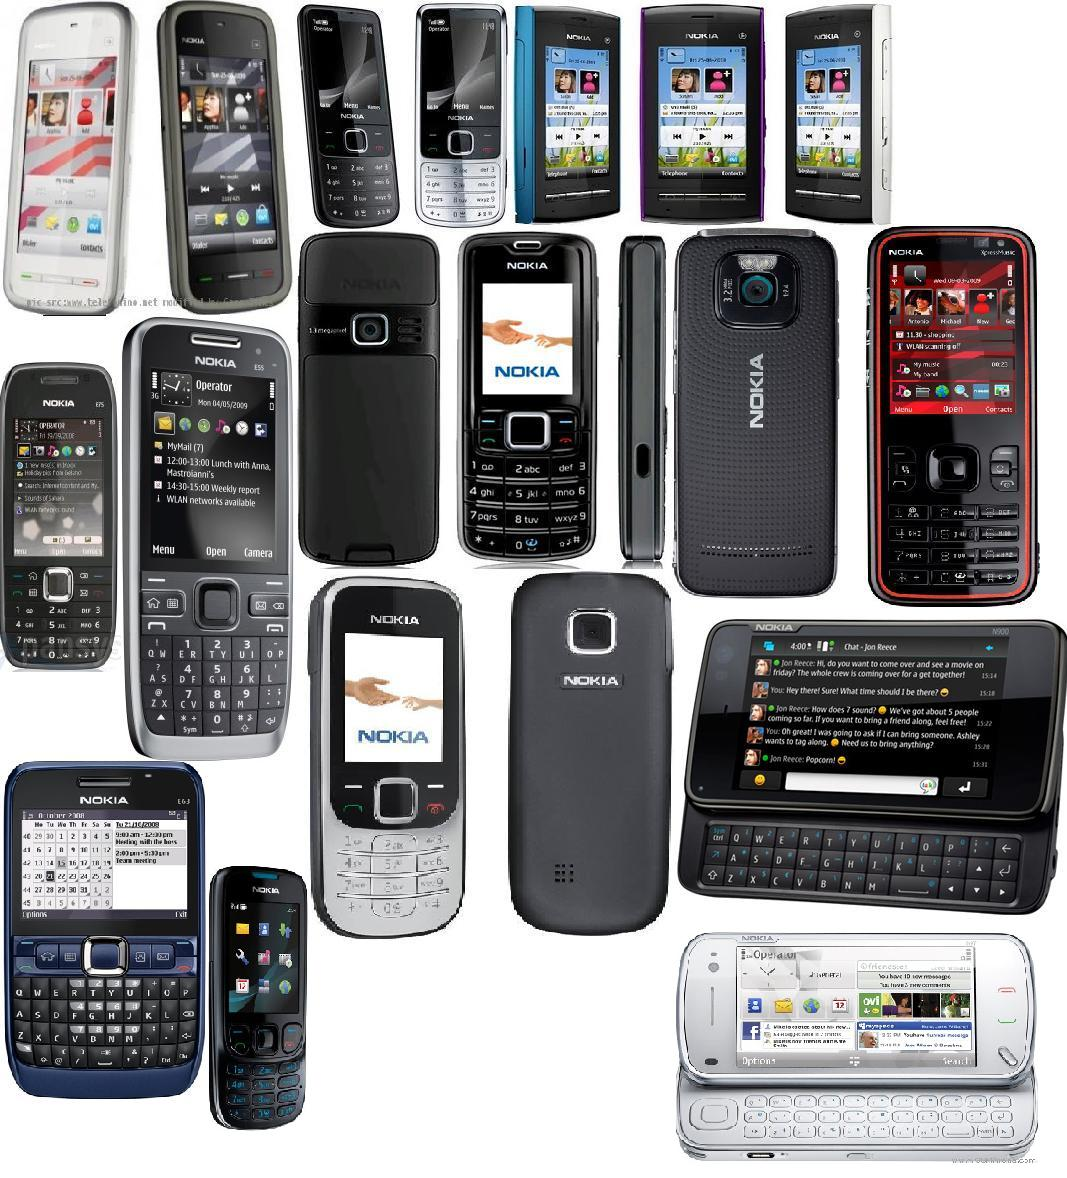 nokia mobile phones Buy latest nokia mobile phones at great prices online at jumia nigeria | large selection of latest nokia phones - nokia x, 105 & more | order now.